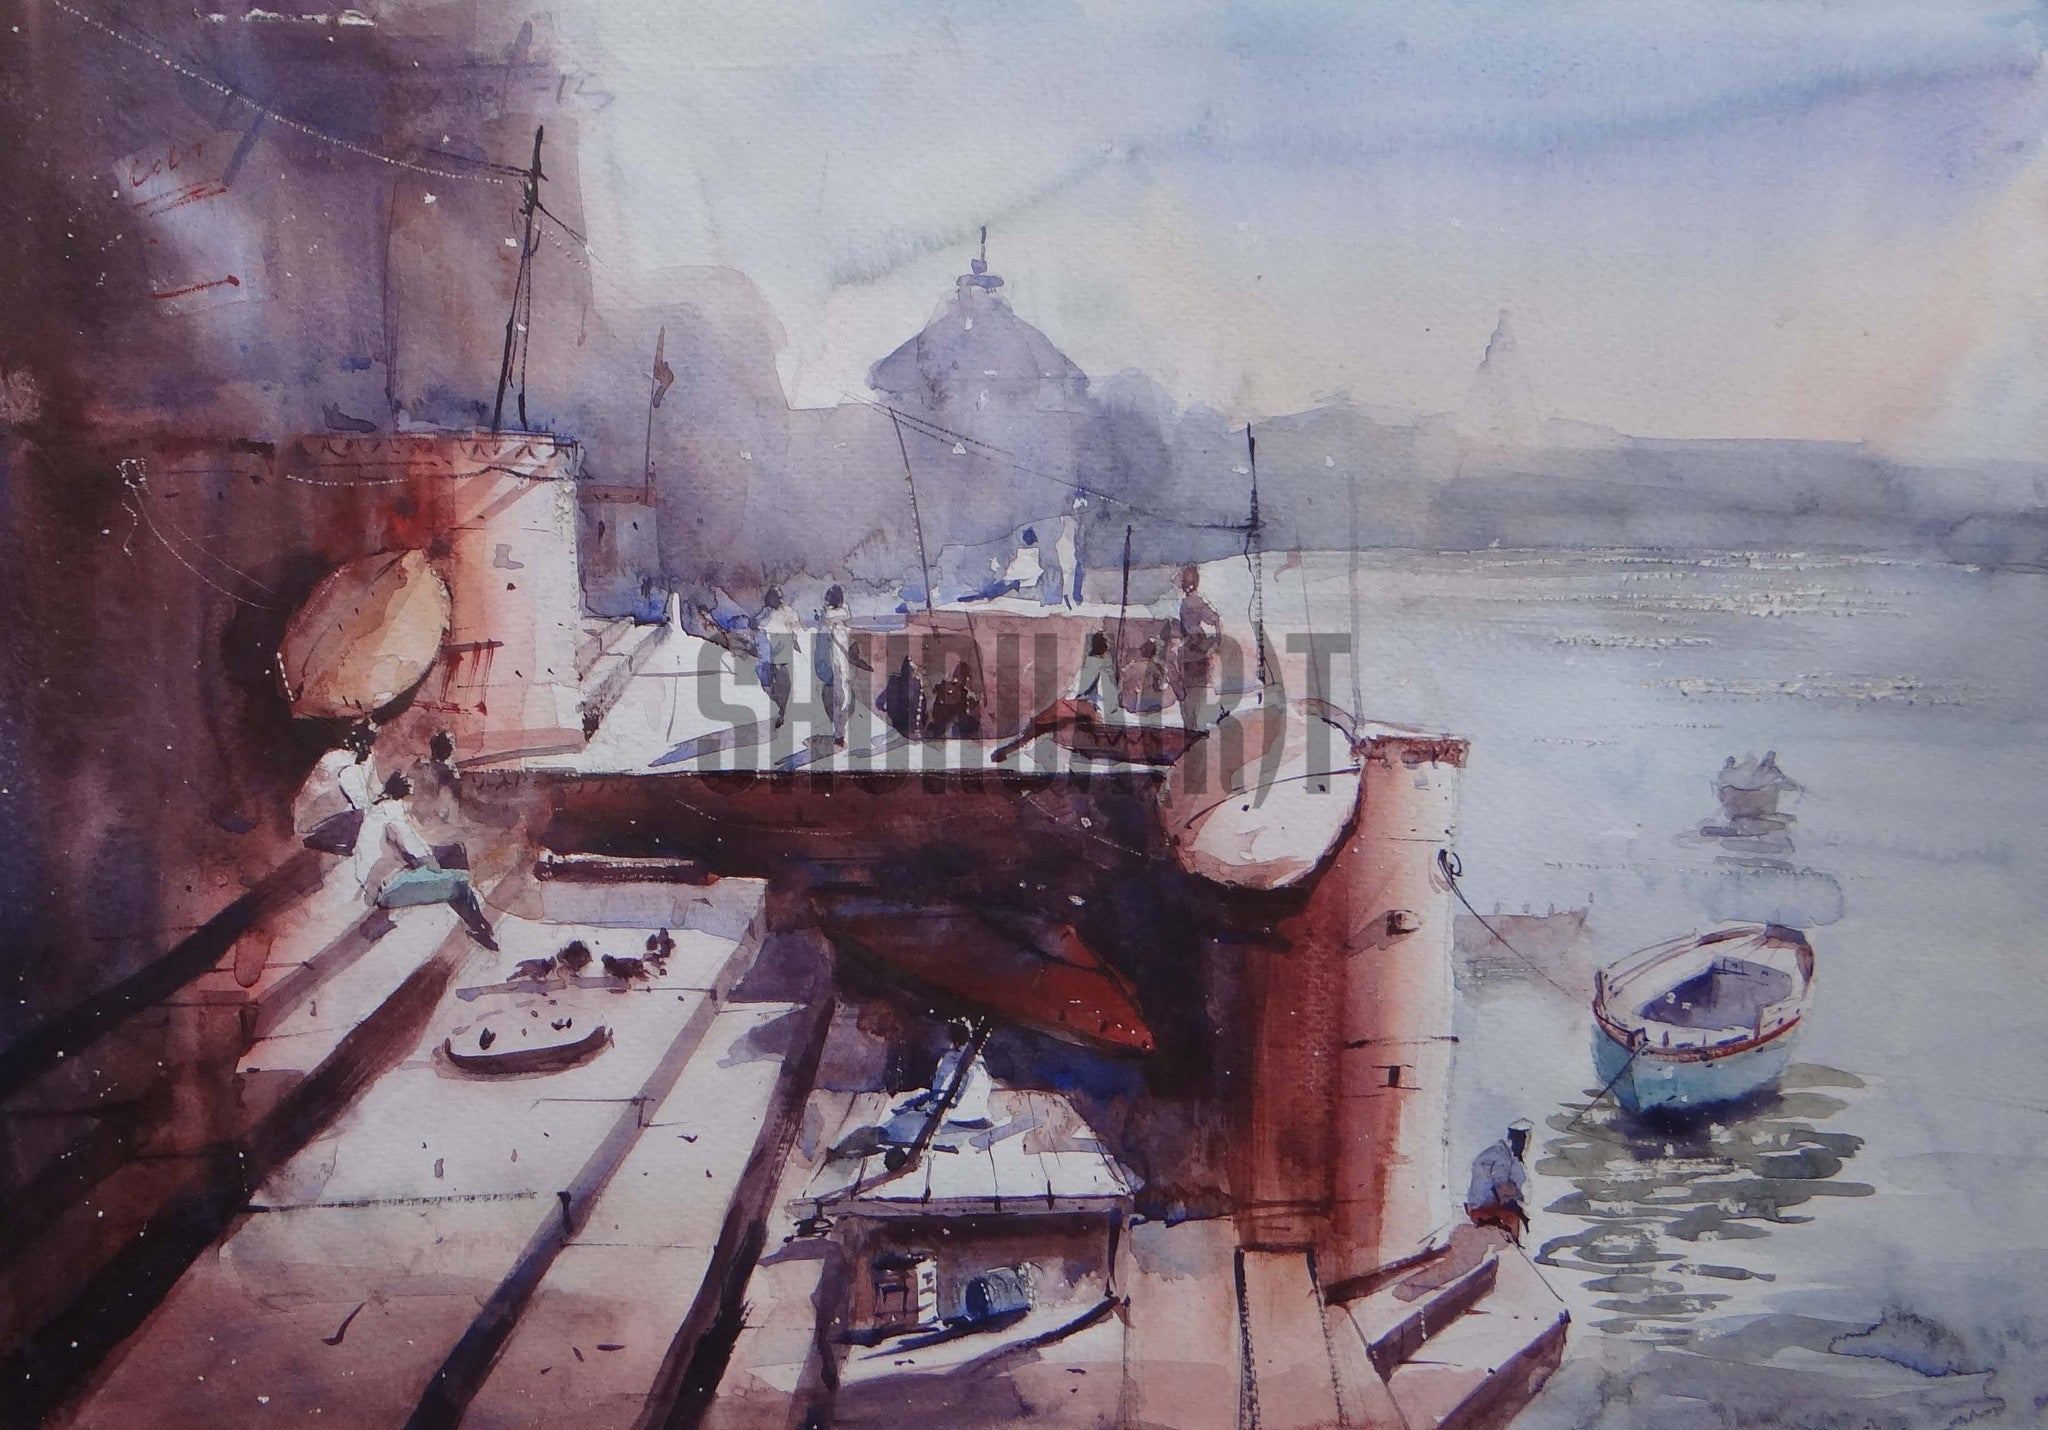 Painting of Ghats of Varanasi